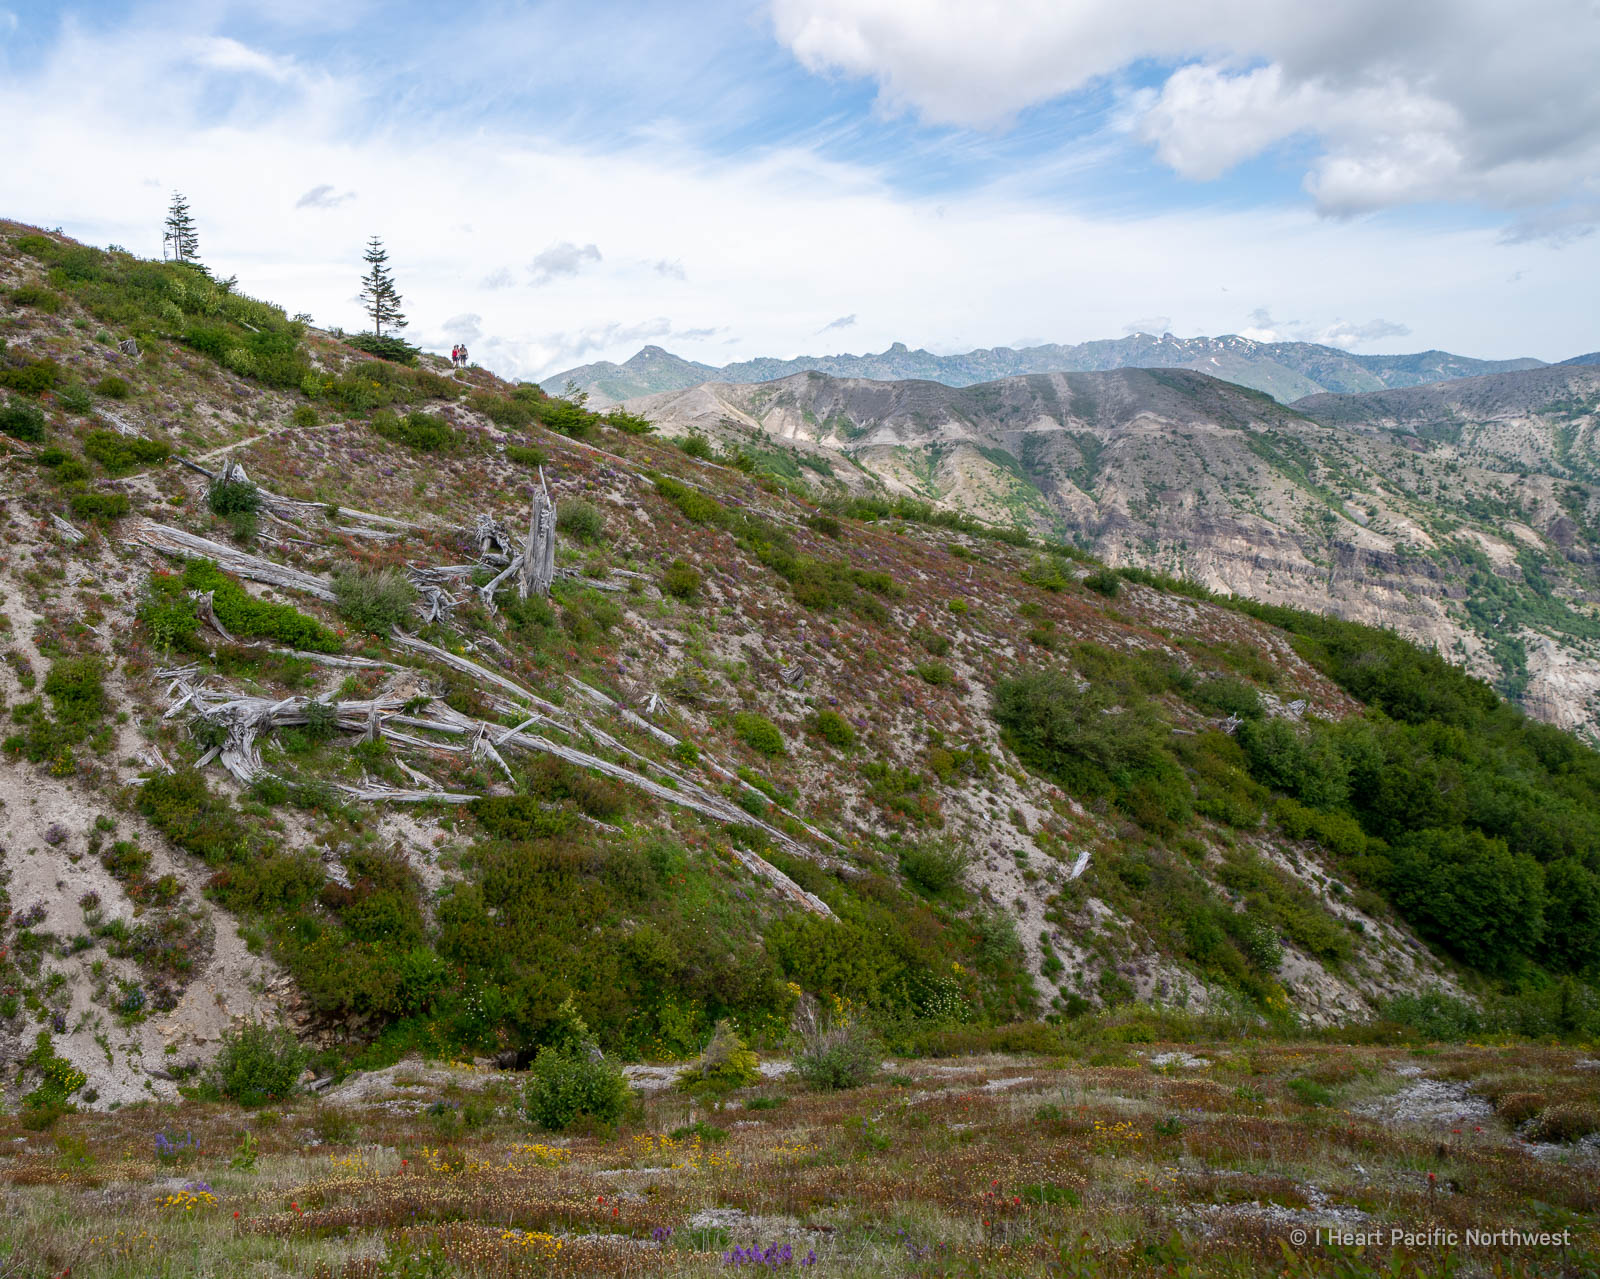 Mount St. Helens - Ape Canyon backpacking trip